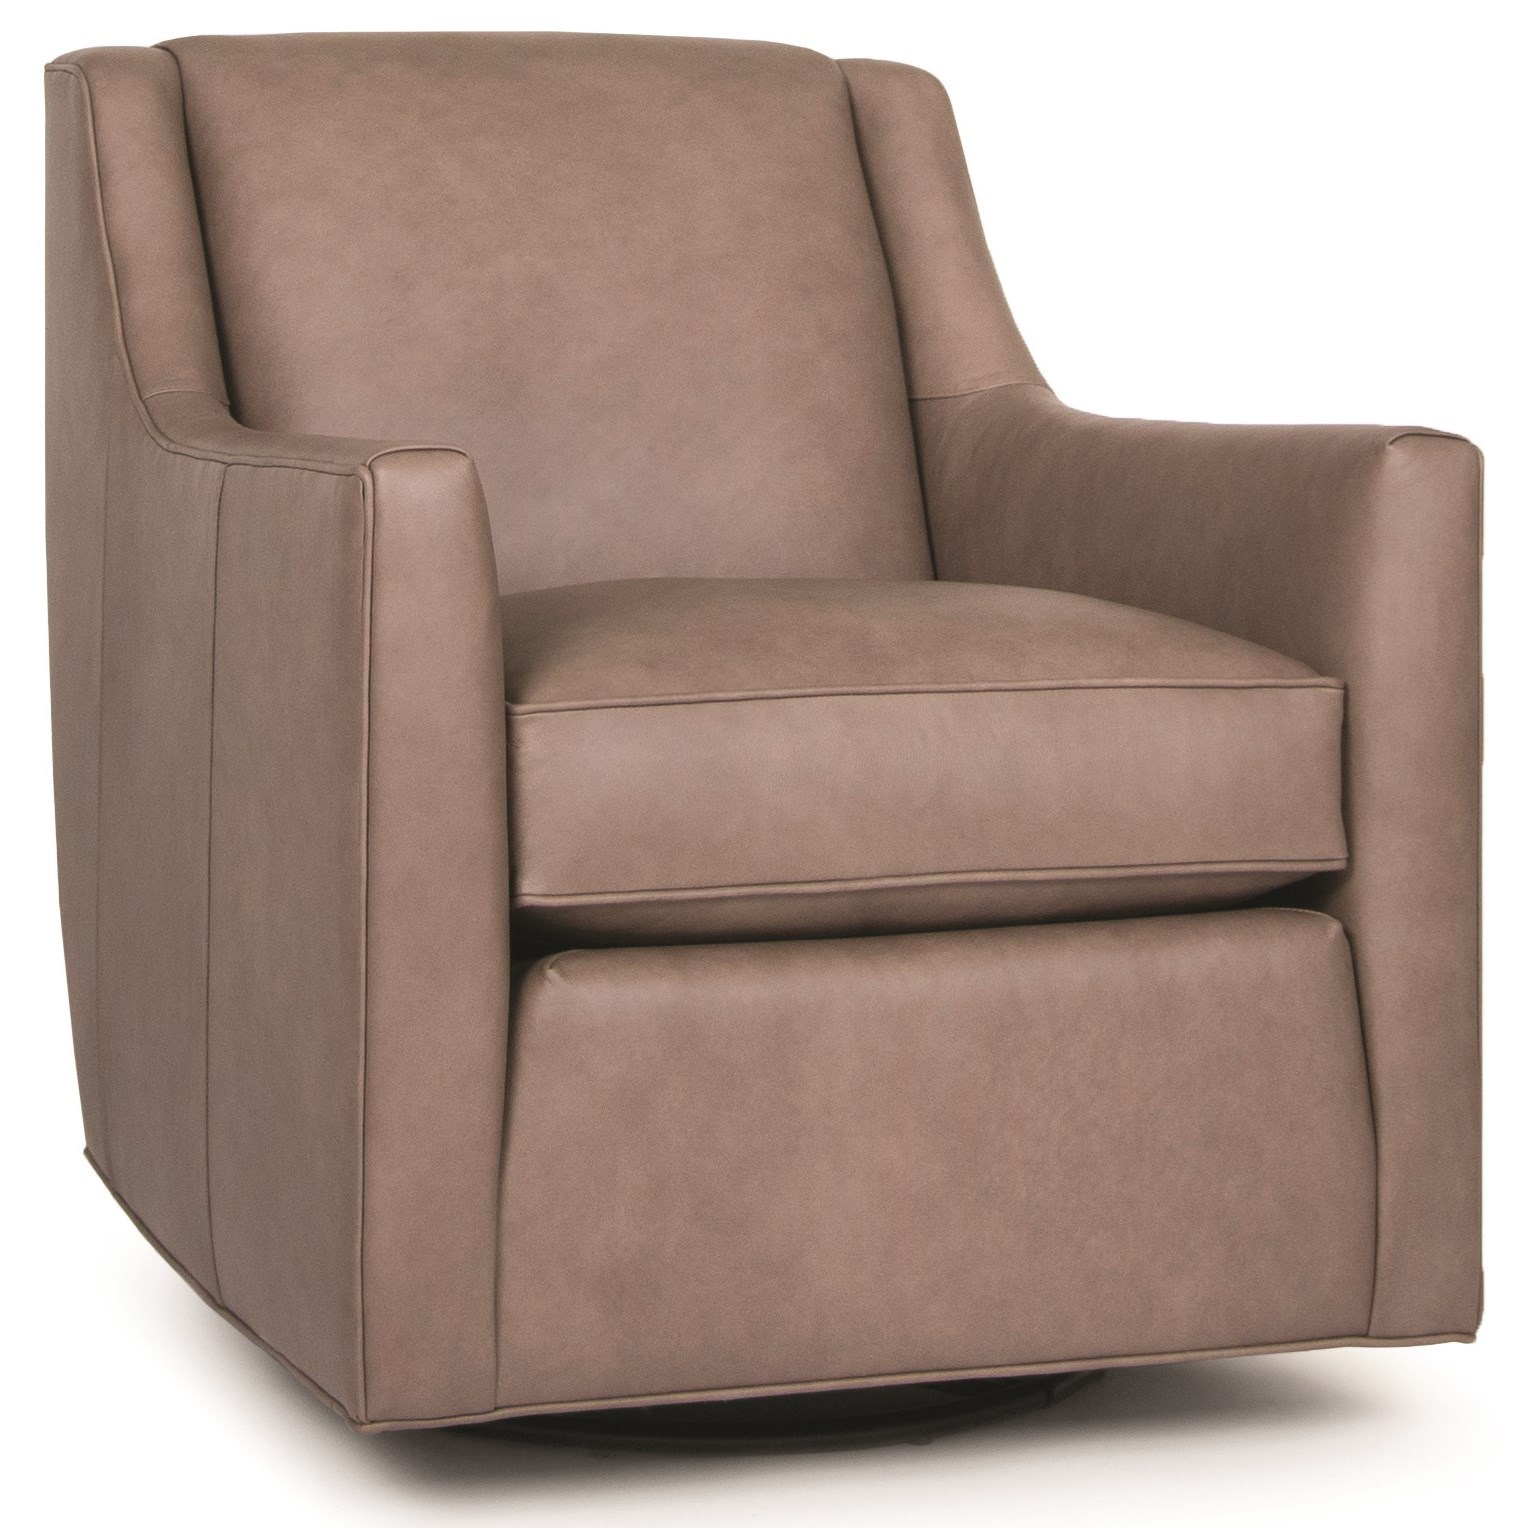 549 Swivel Glider Chair by Smith Brothers at Miller Home